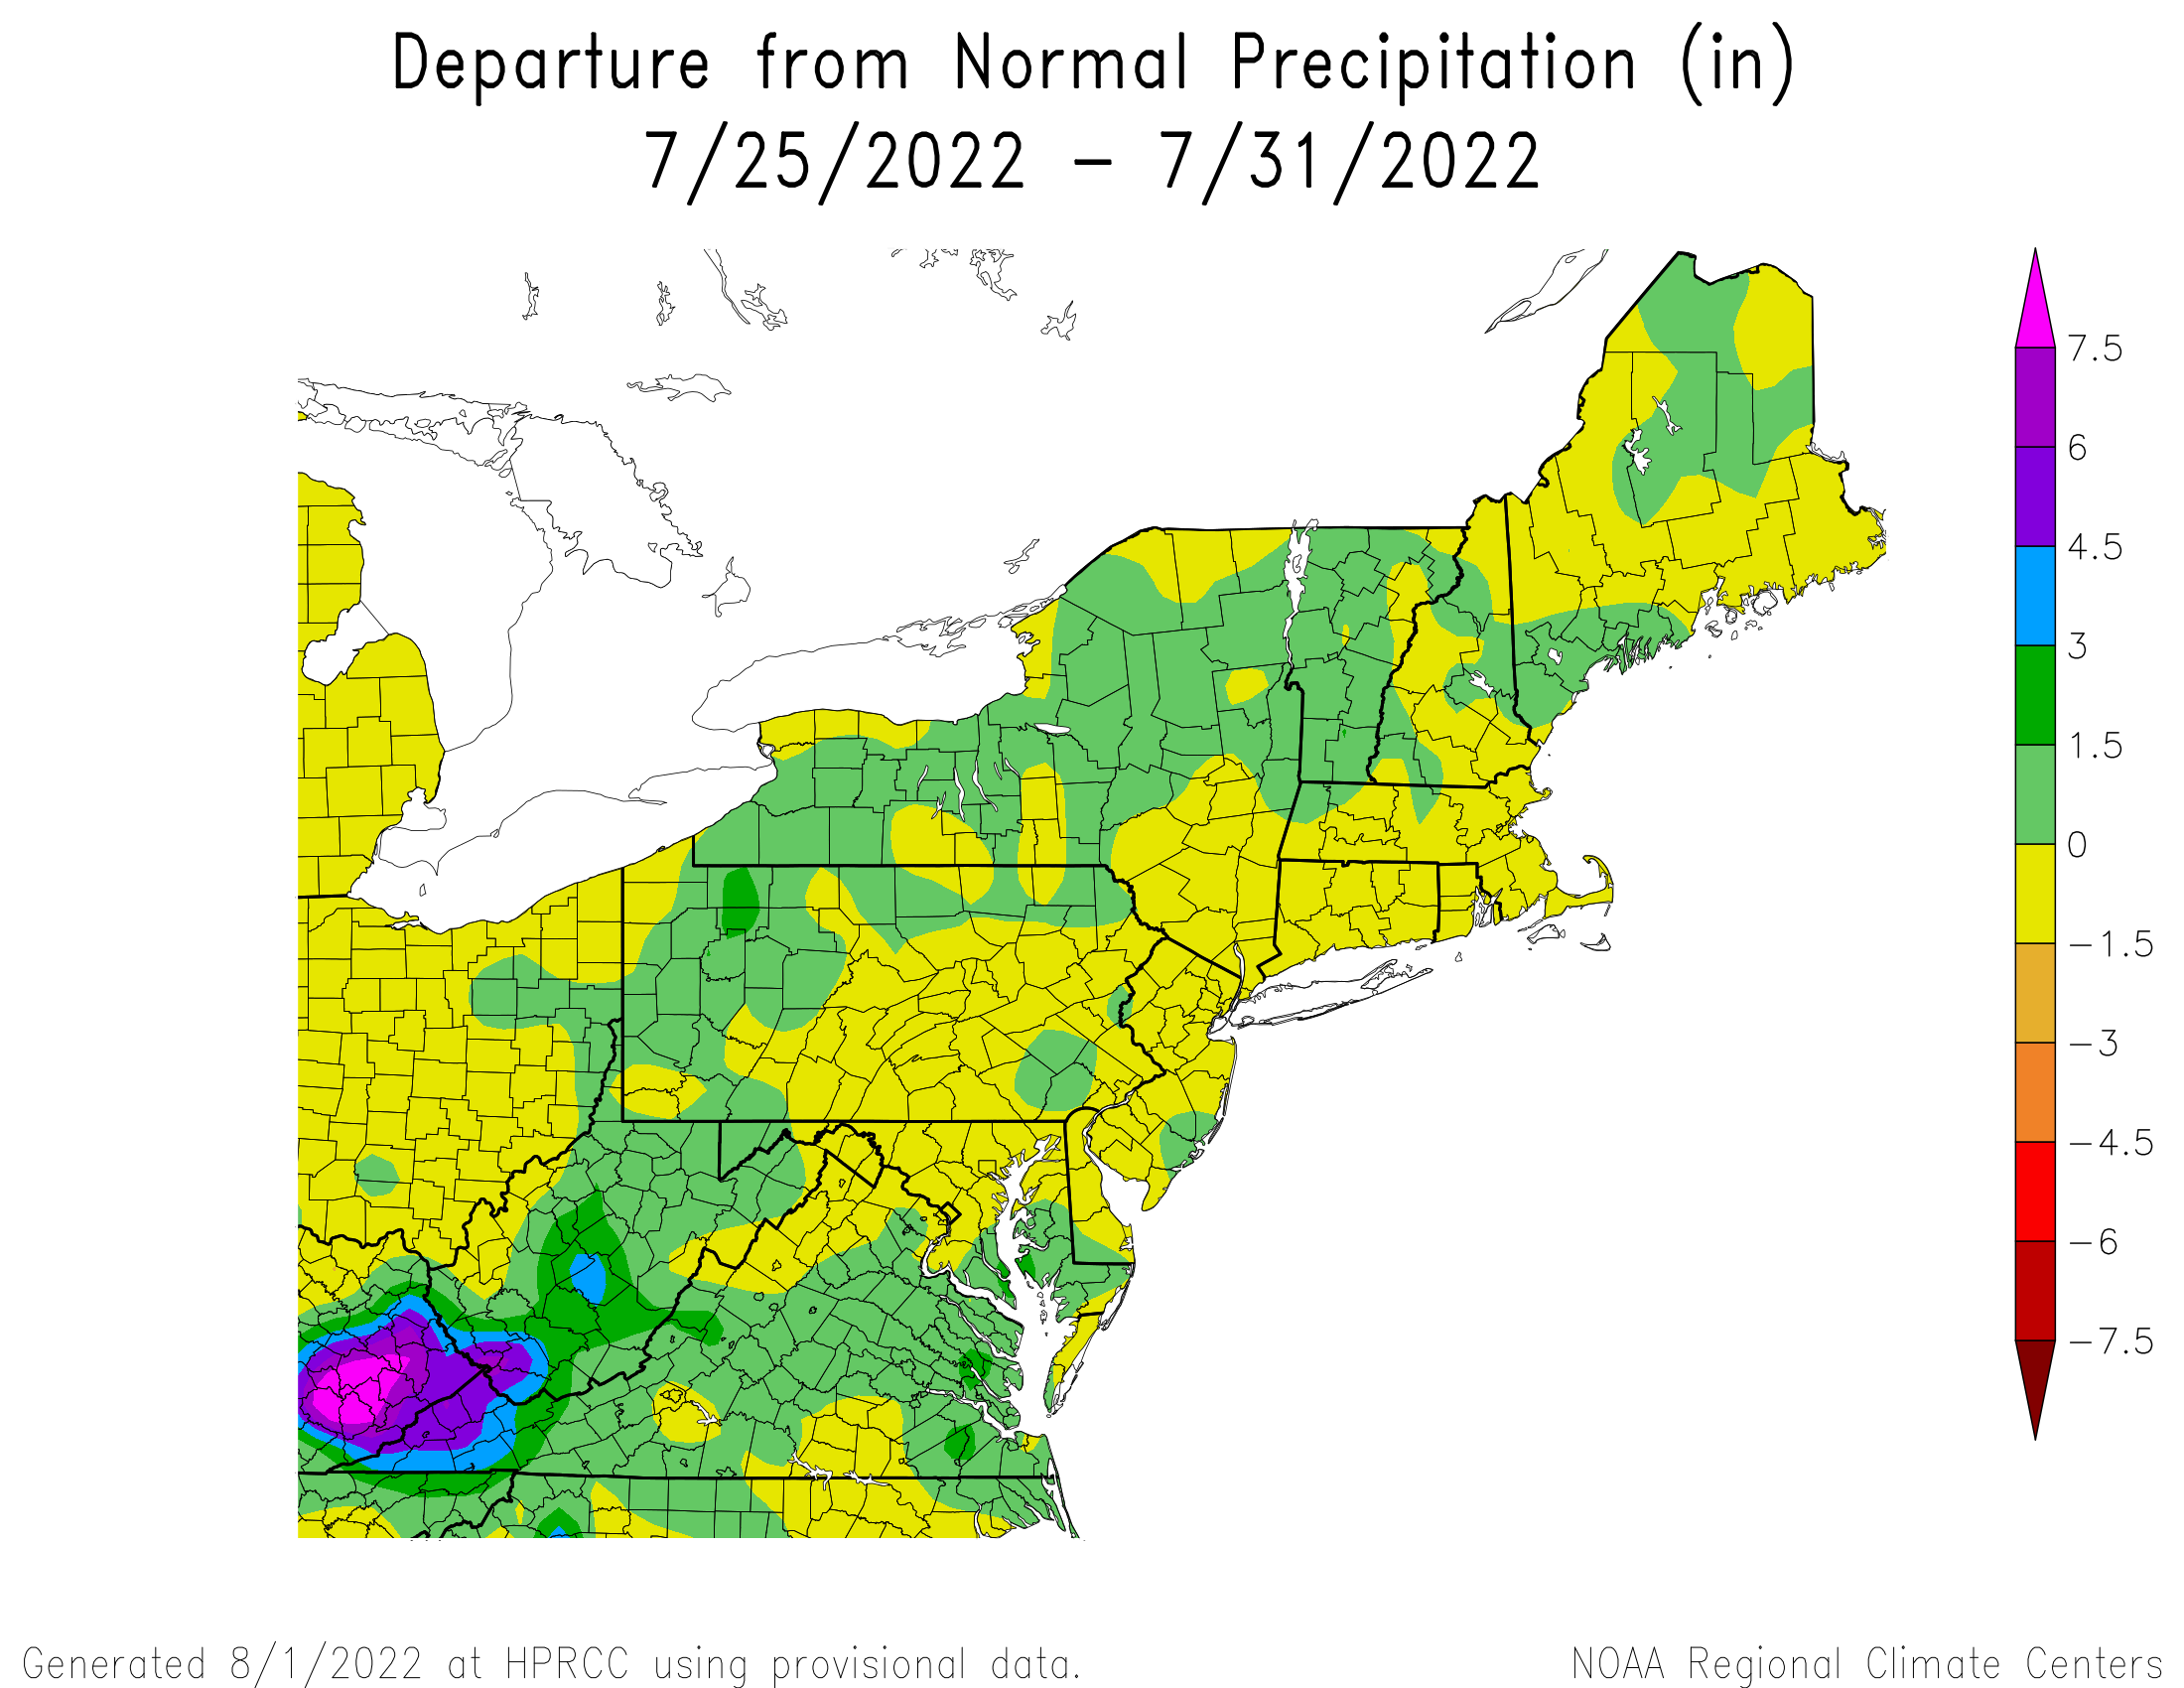 7-Day Total Precipitation Departure